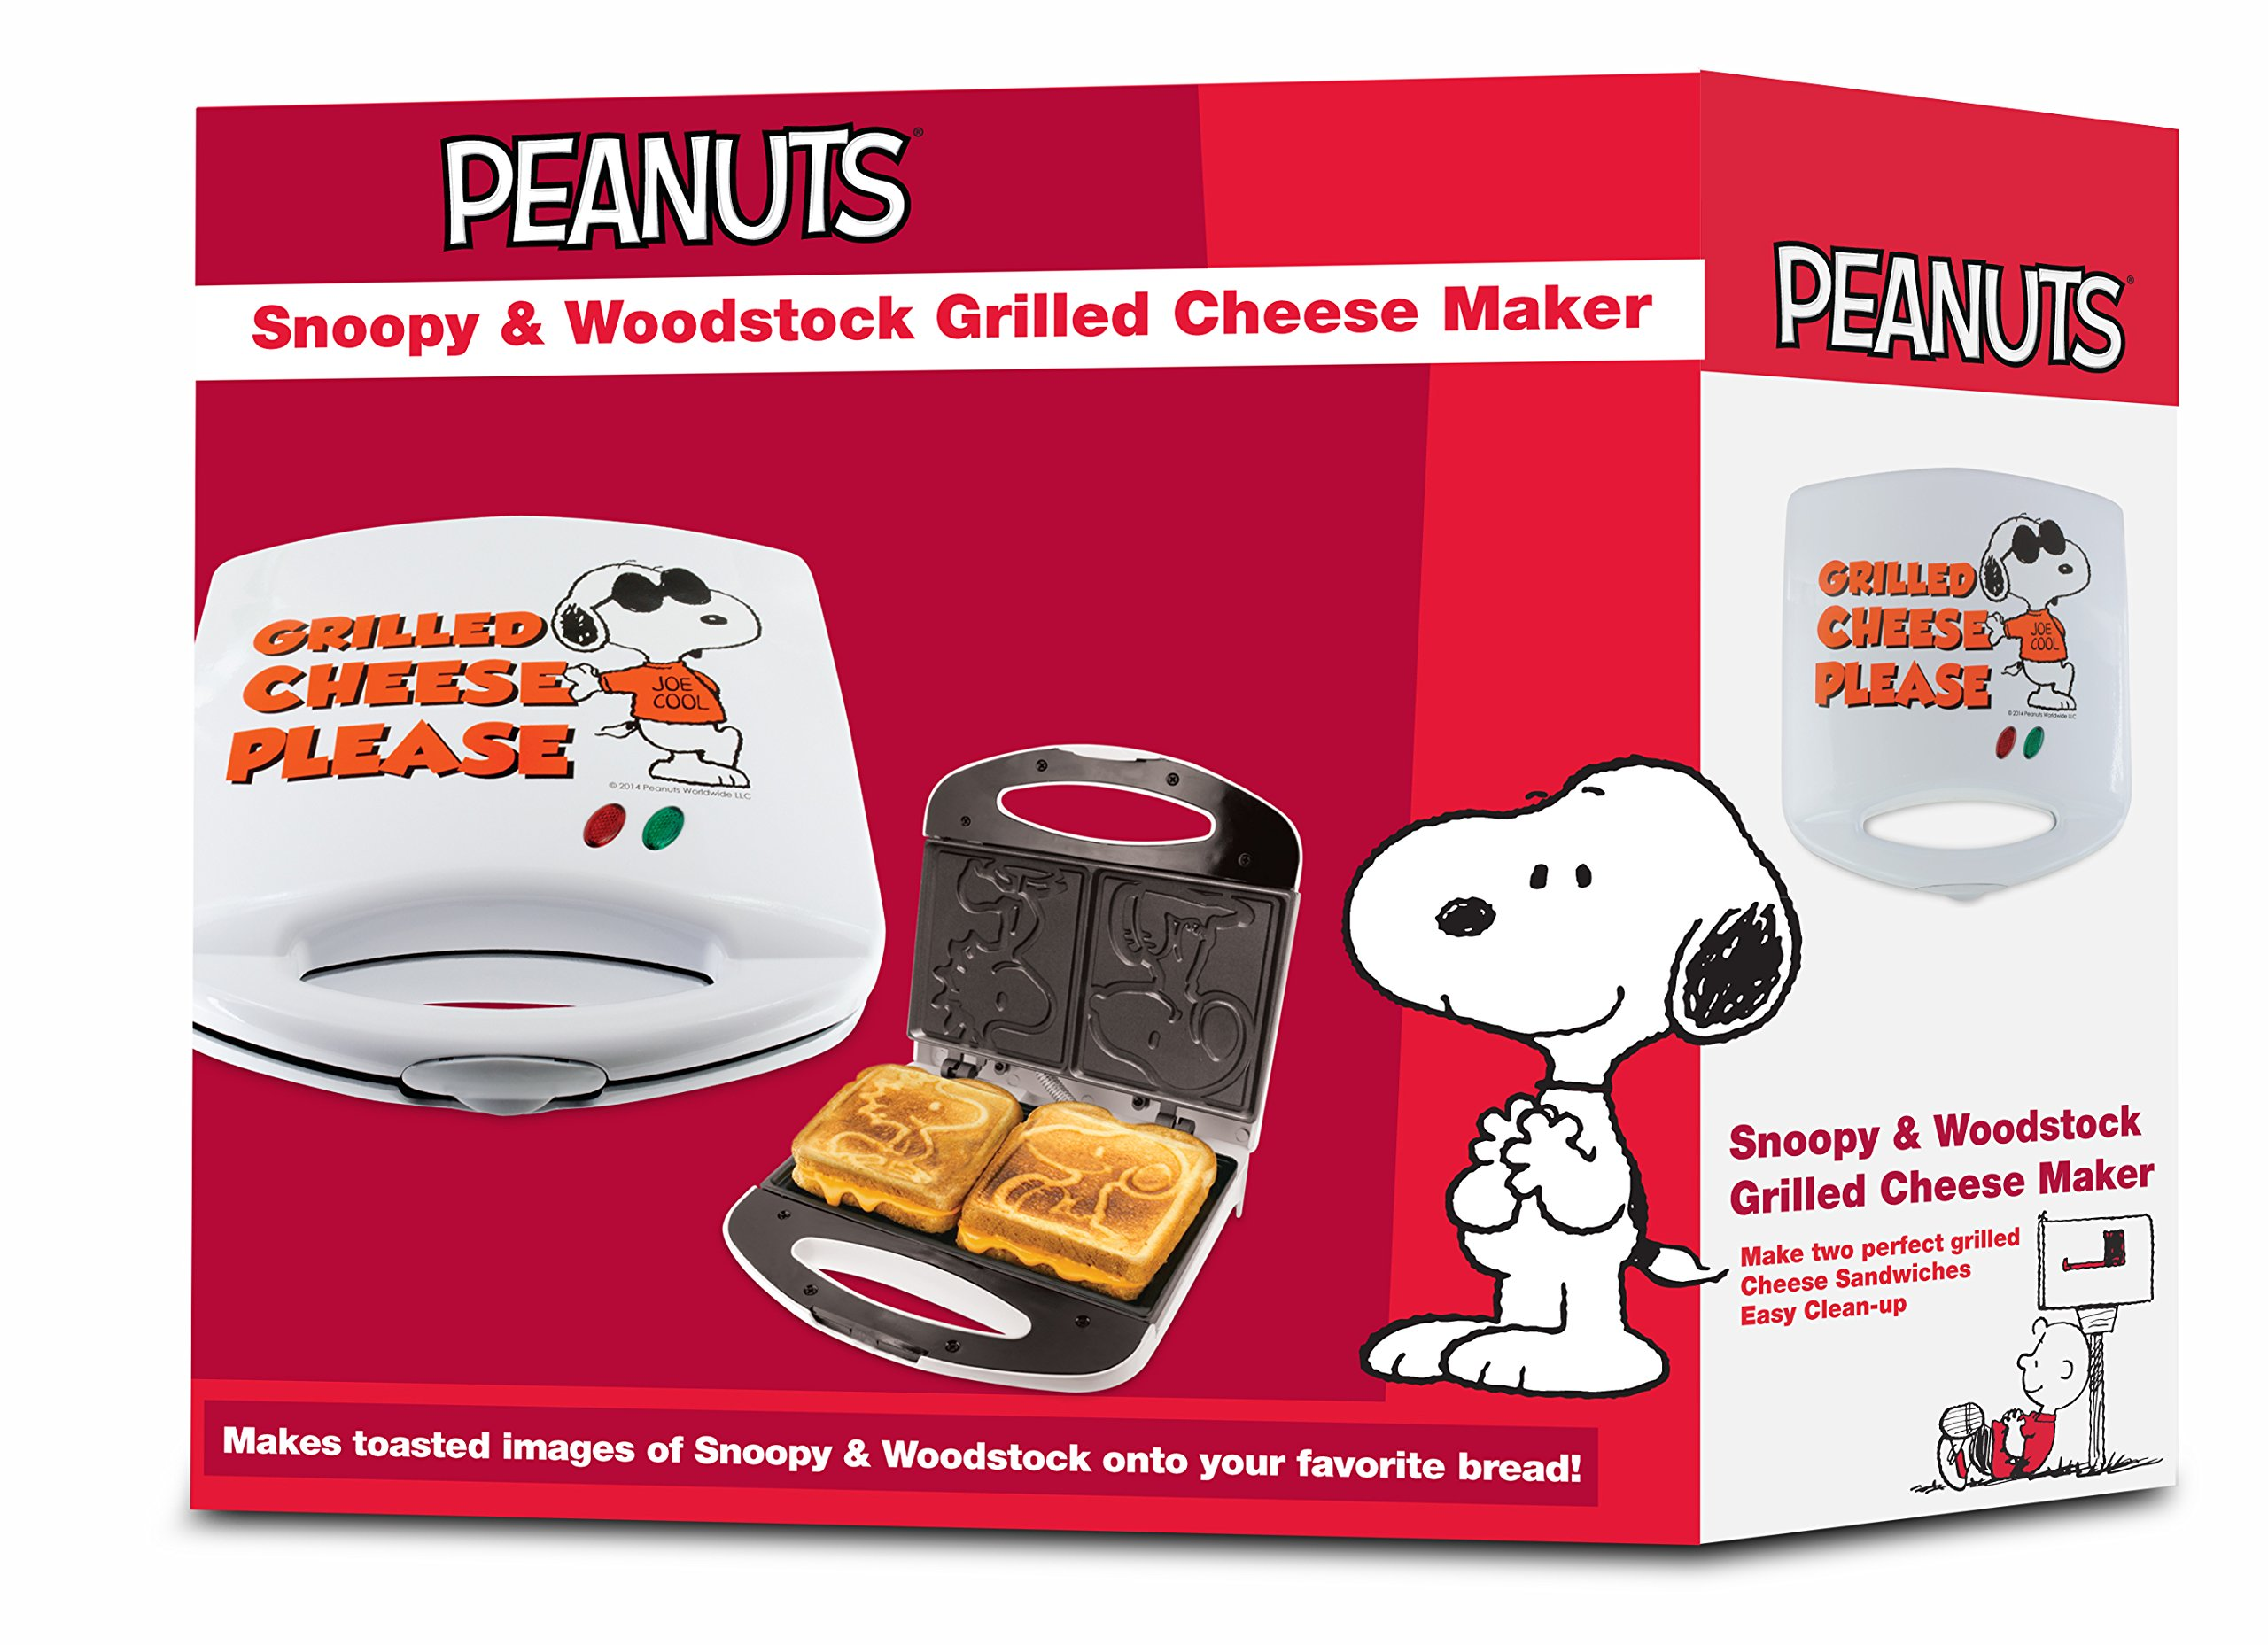 Smart Planet SGCM‐2 Peanuts Snoopy and Woodstock Grilled Cheese Sandwich Maker, White by Smart Planet (Image #6)